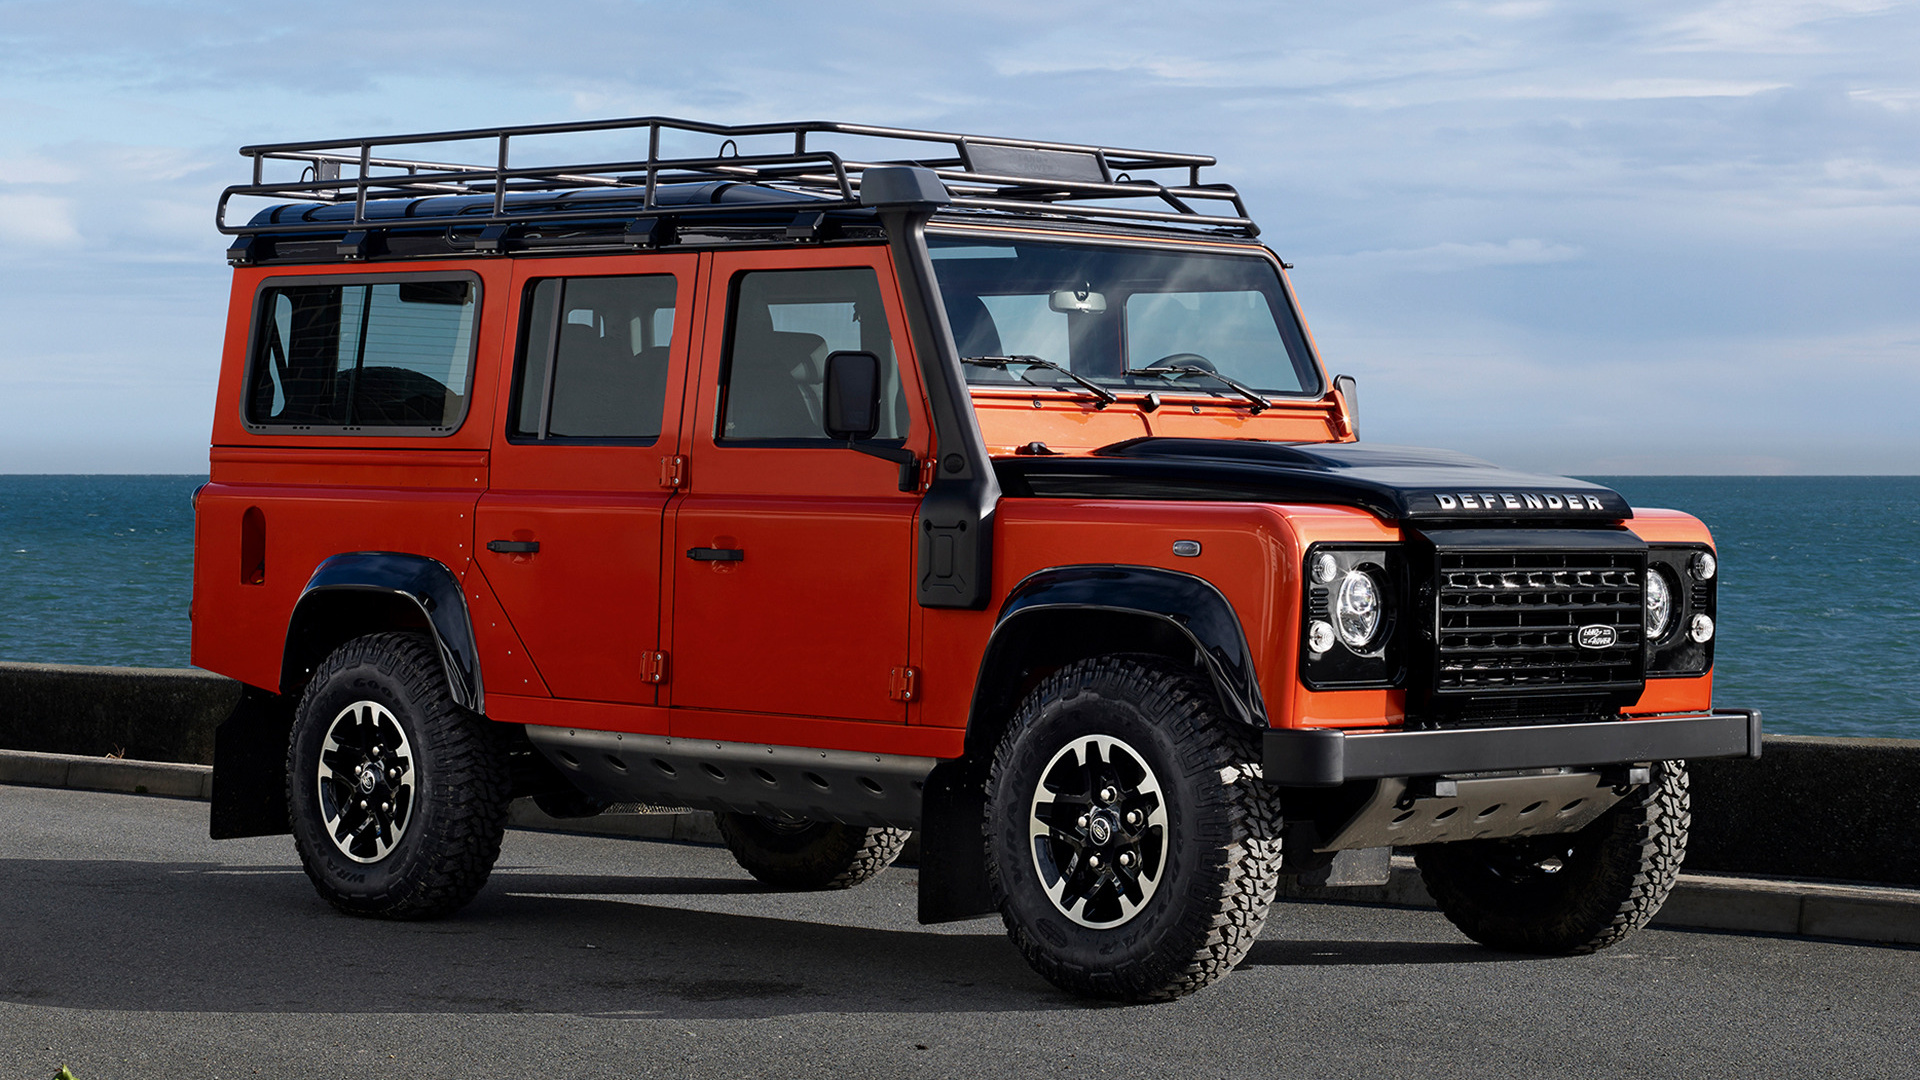 Land Rover Defender 110 Adventure (2015) Wallpapers and HD ...